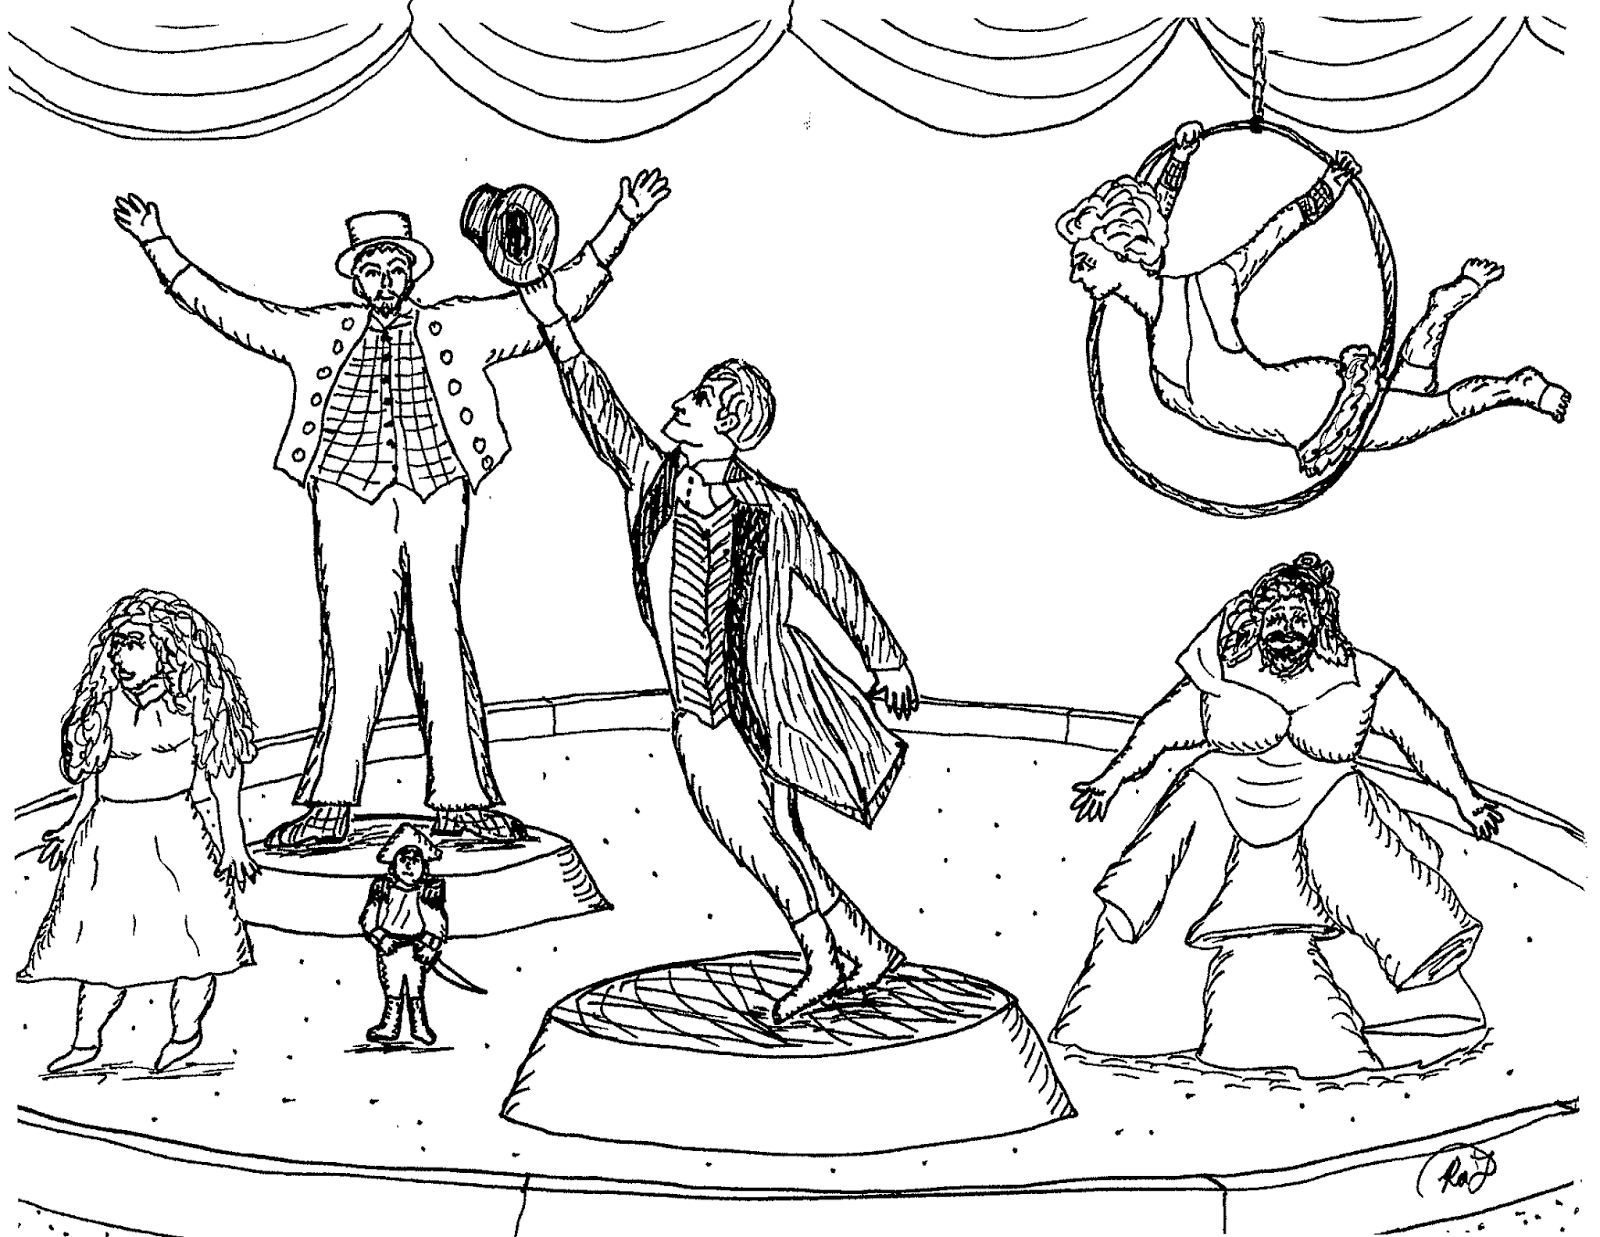 the greatest showman coloring pages | Robin's Great Coloring Pages: The Greatest Showman circus ...